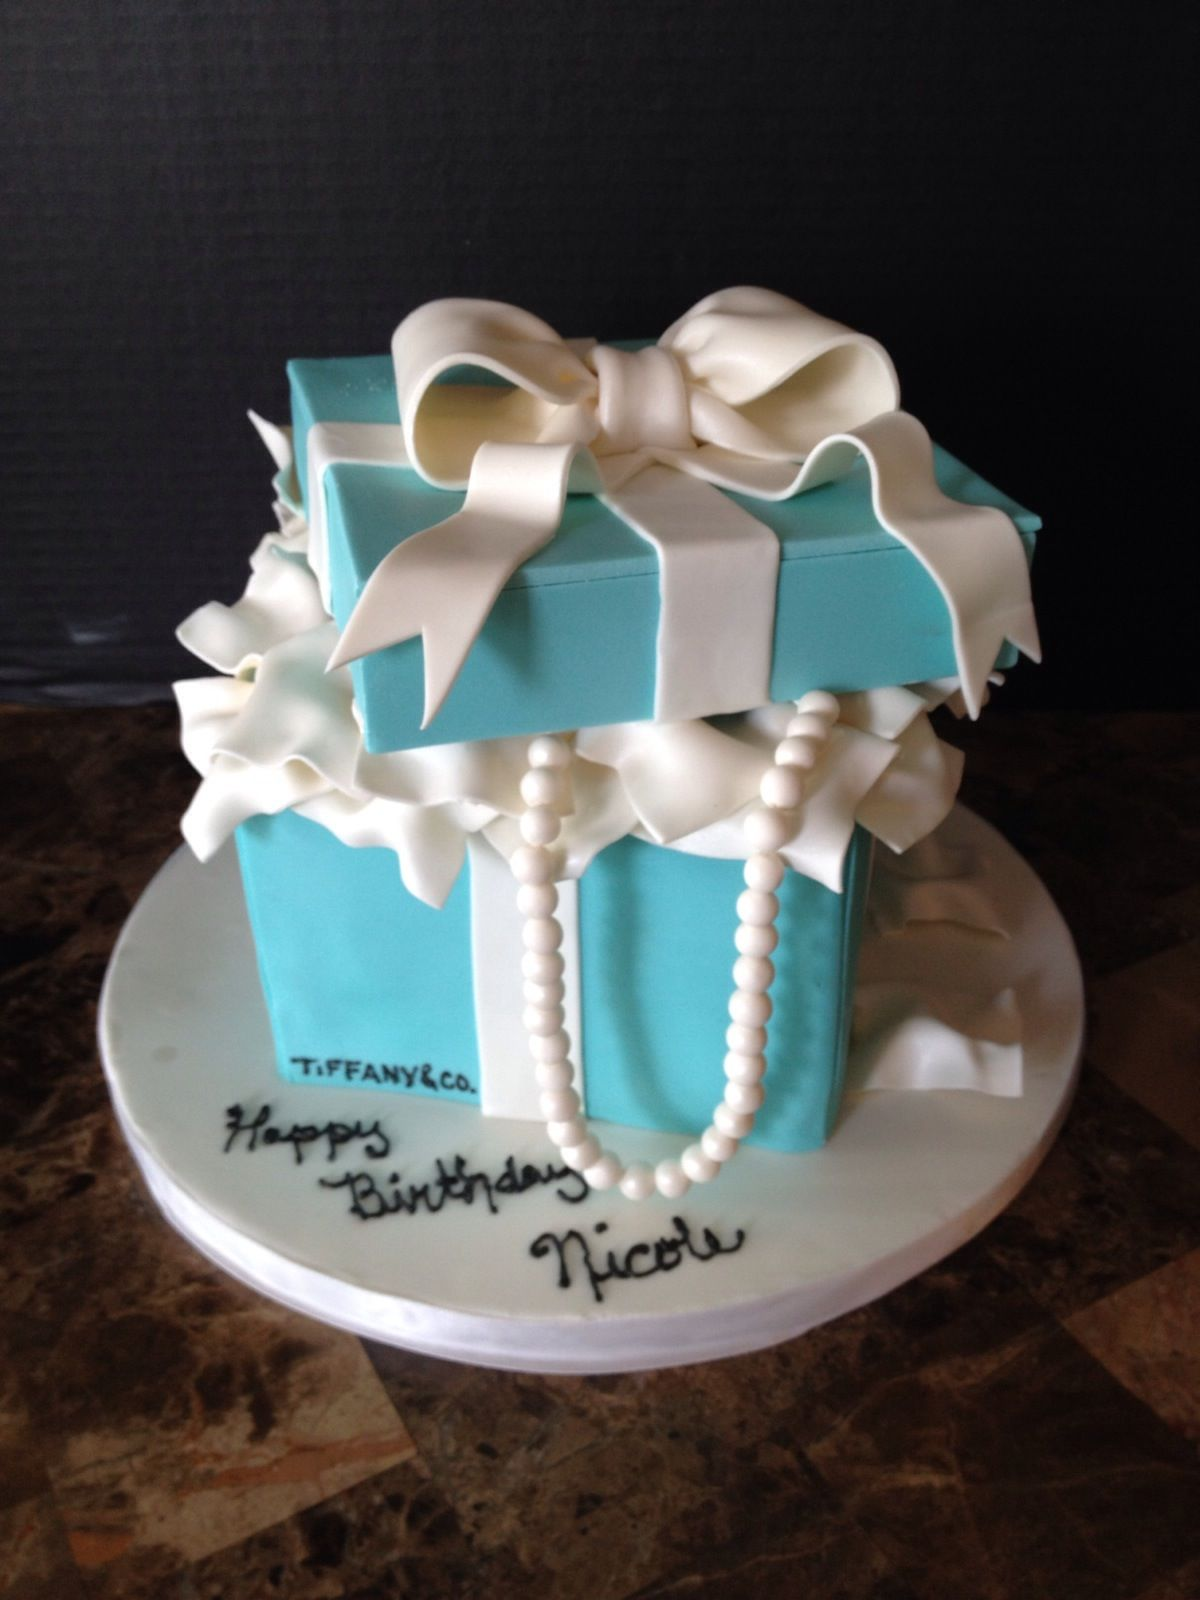 Tiffany Box Cake Perfect For Any Girl Birthday Cale 30th Parties